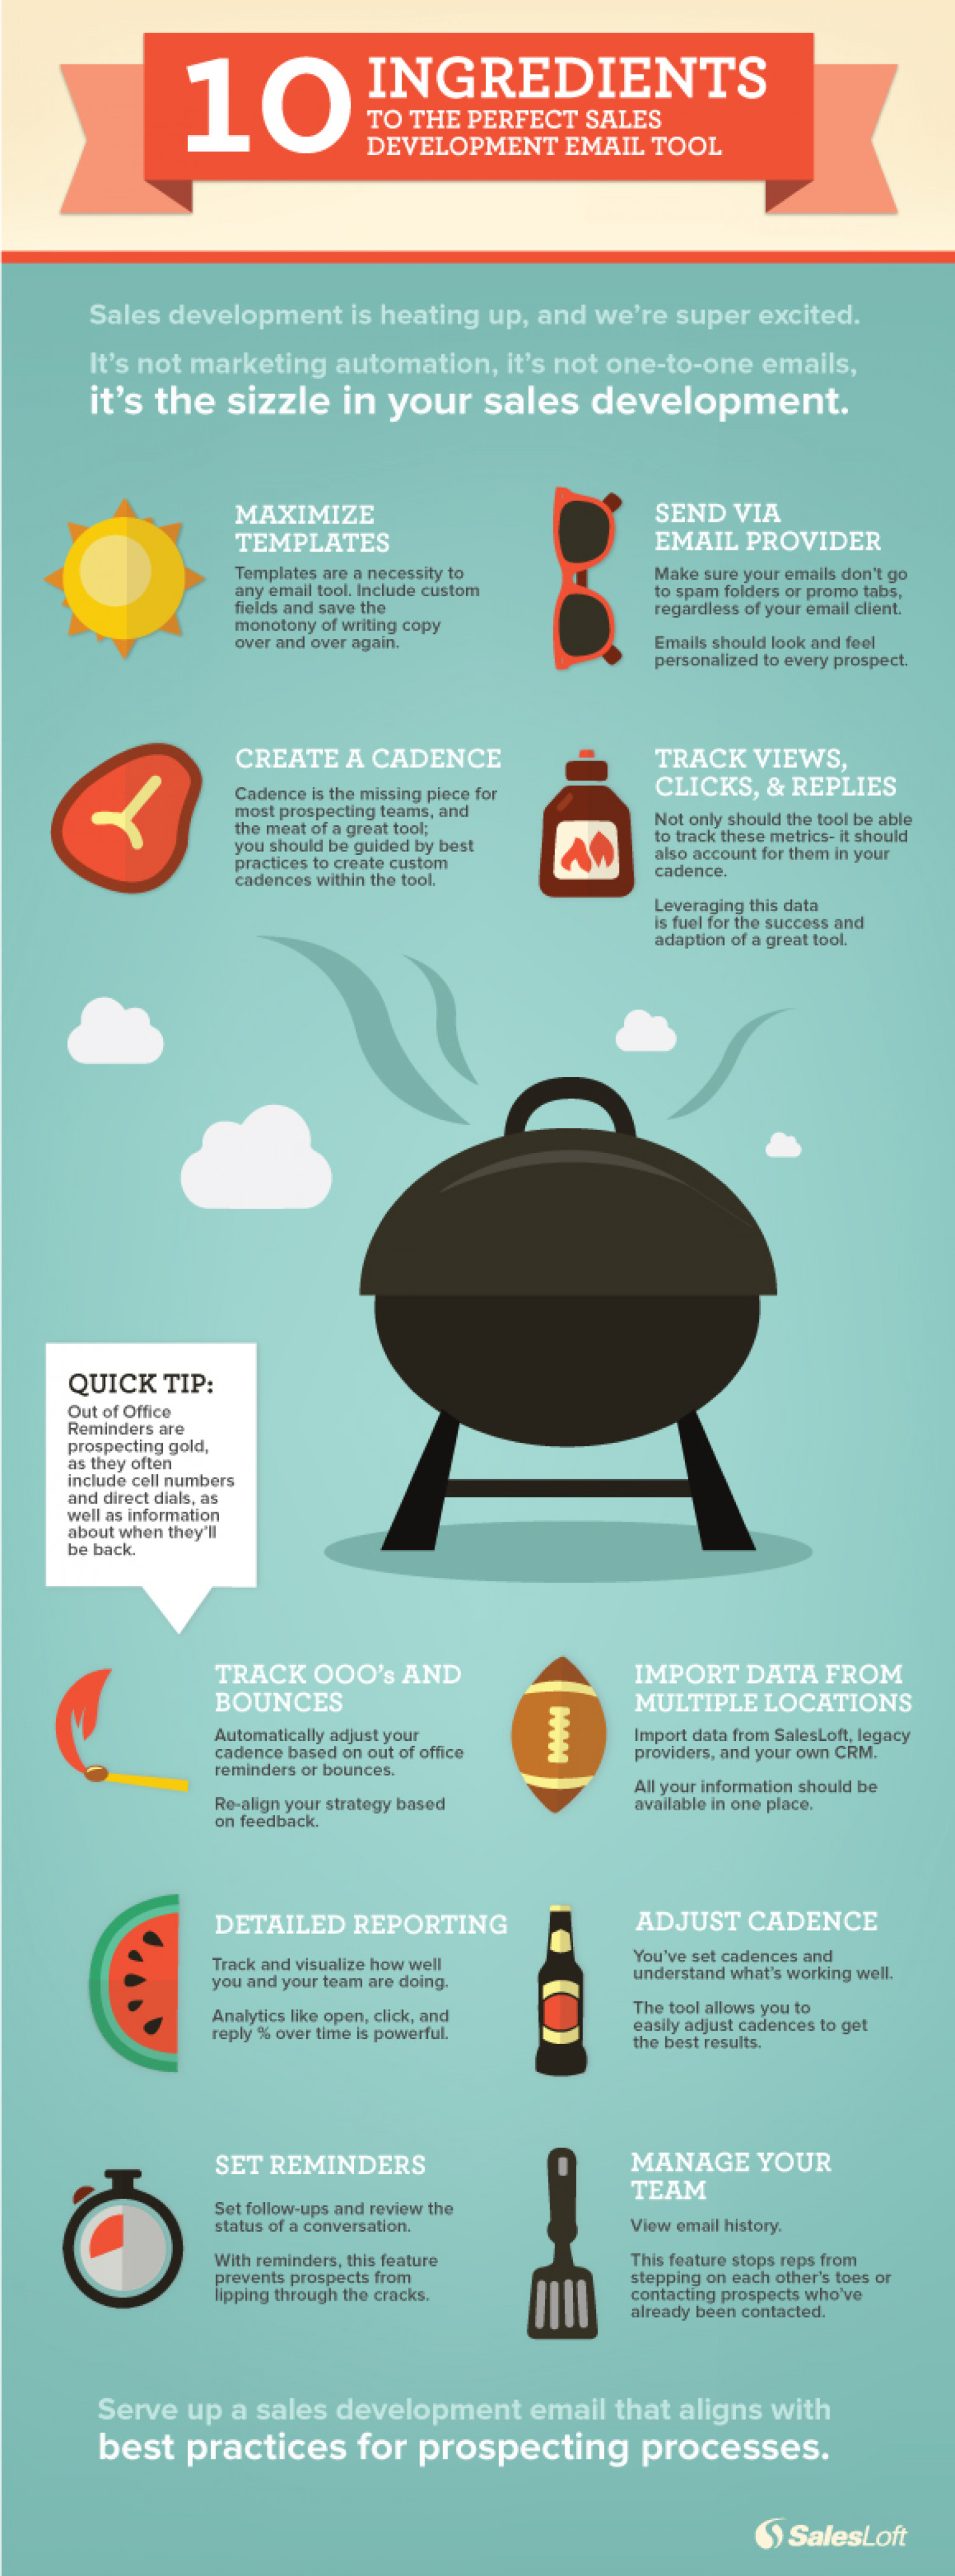 10 Ingredients To A Perfect Sales Development Email Tool Infographic